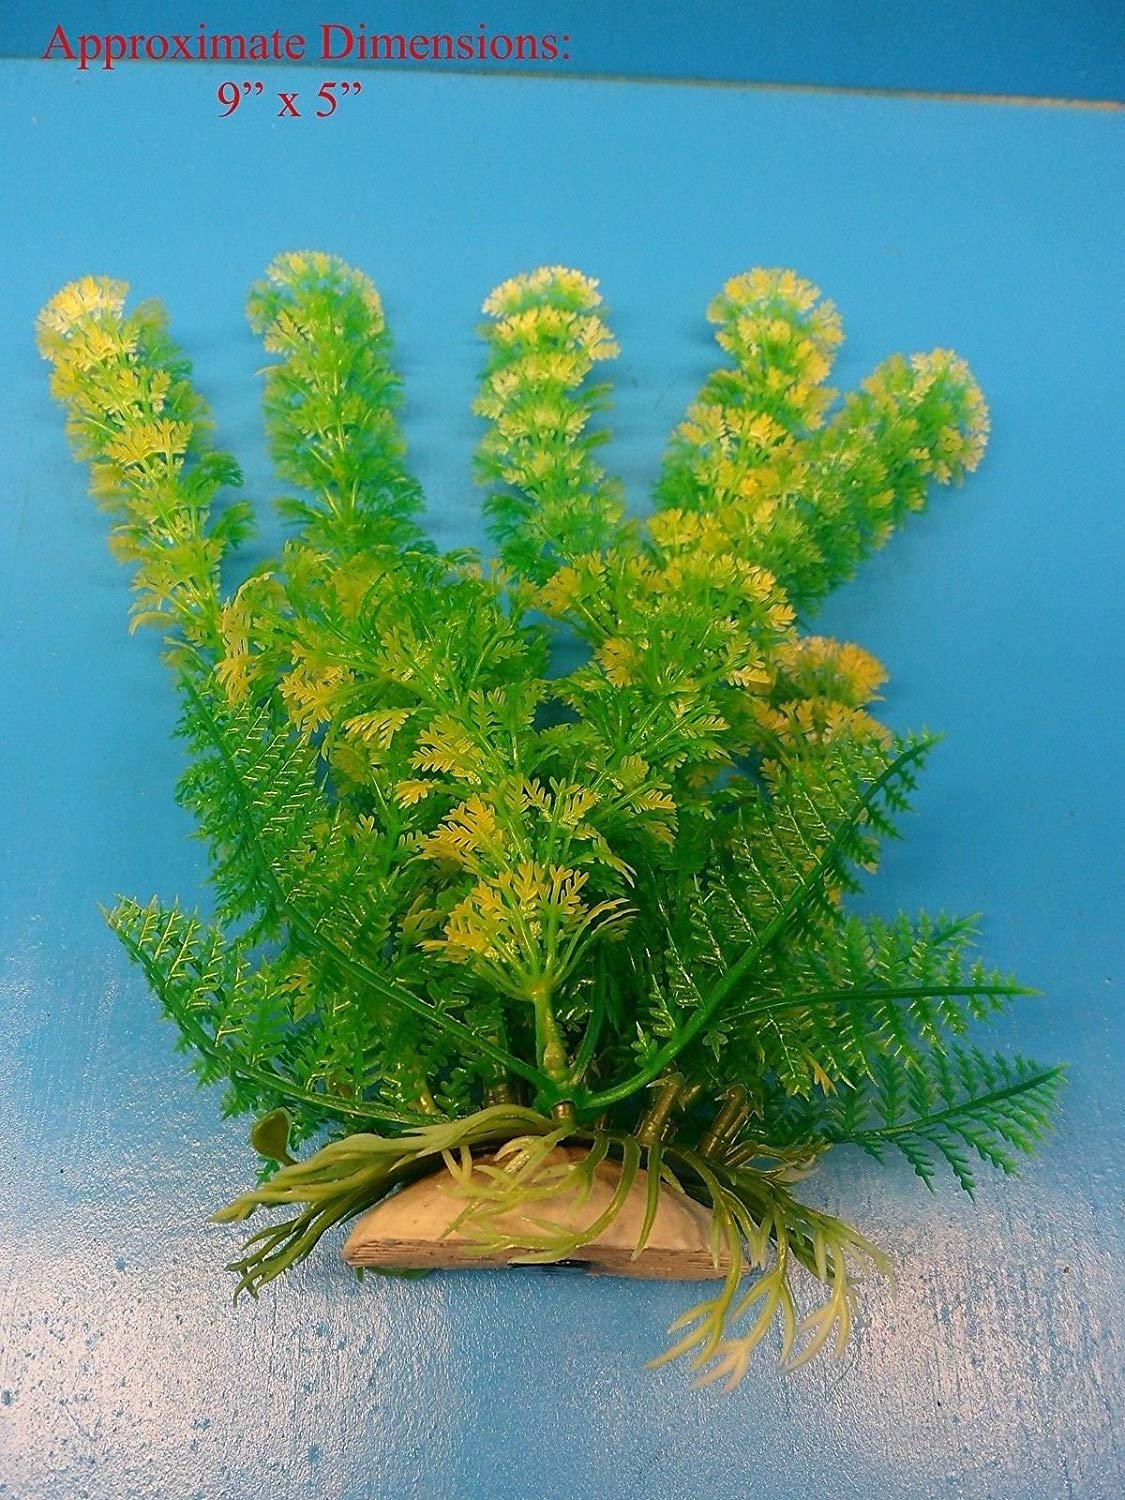 "Azaina_atl AQUARIUM DECORATION - PLASTIC PLANT W HEAVY BASE 922174 9"" H x 5"""